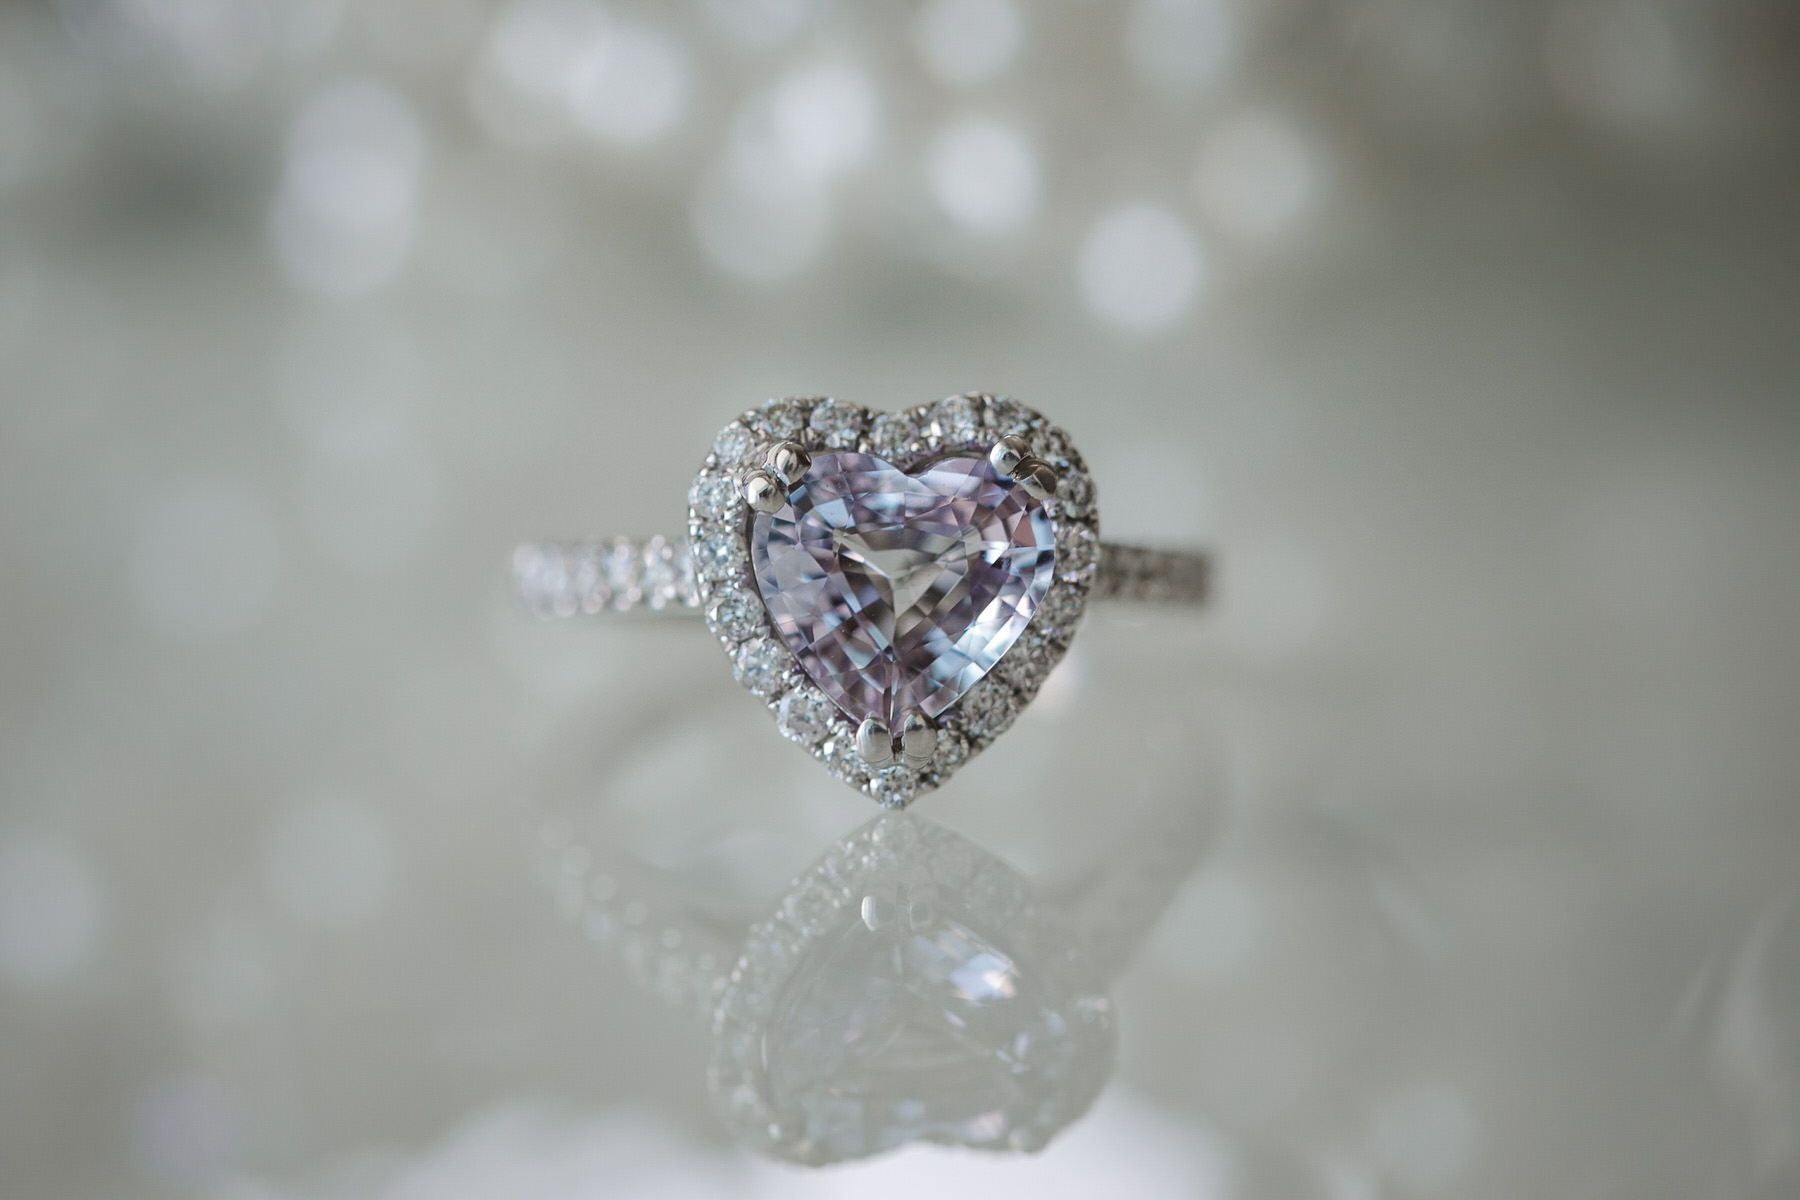 Heart-shaped engagement ring with diamond halo and diamond band